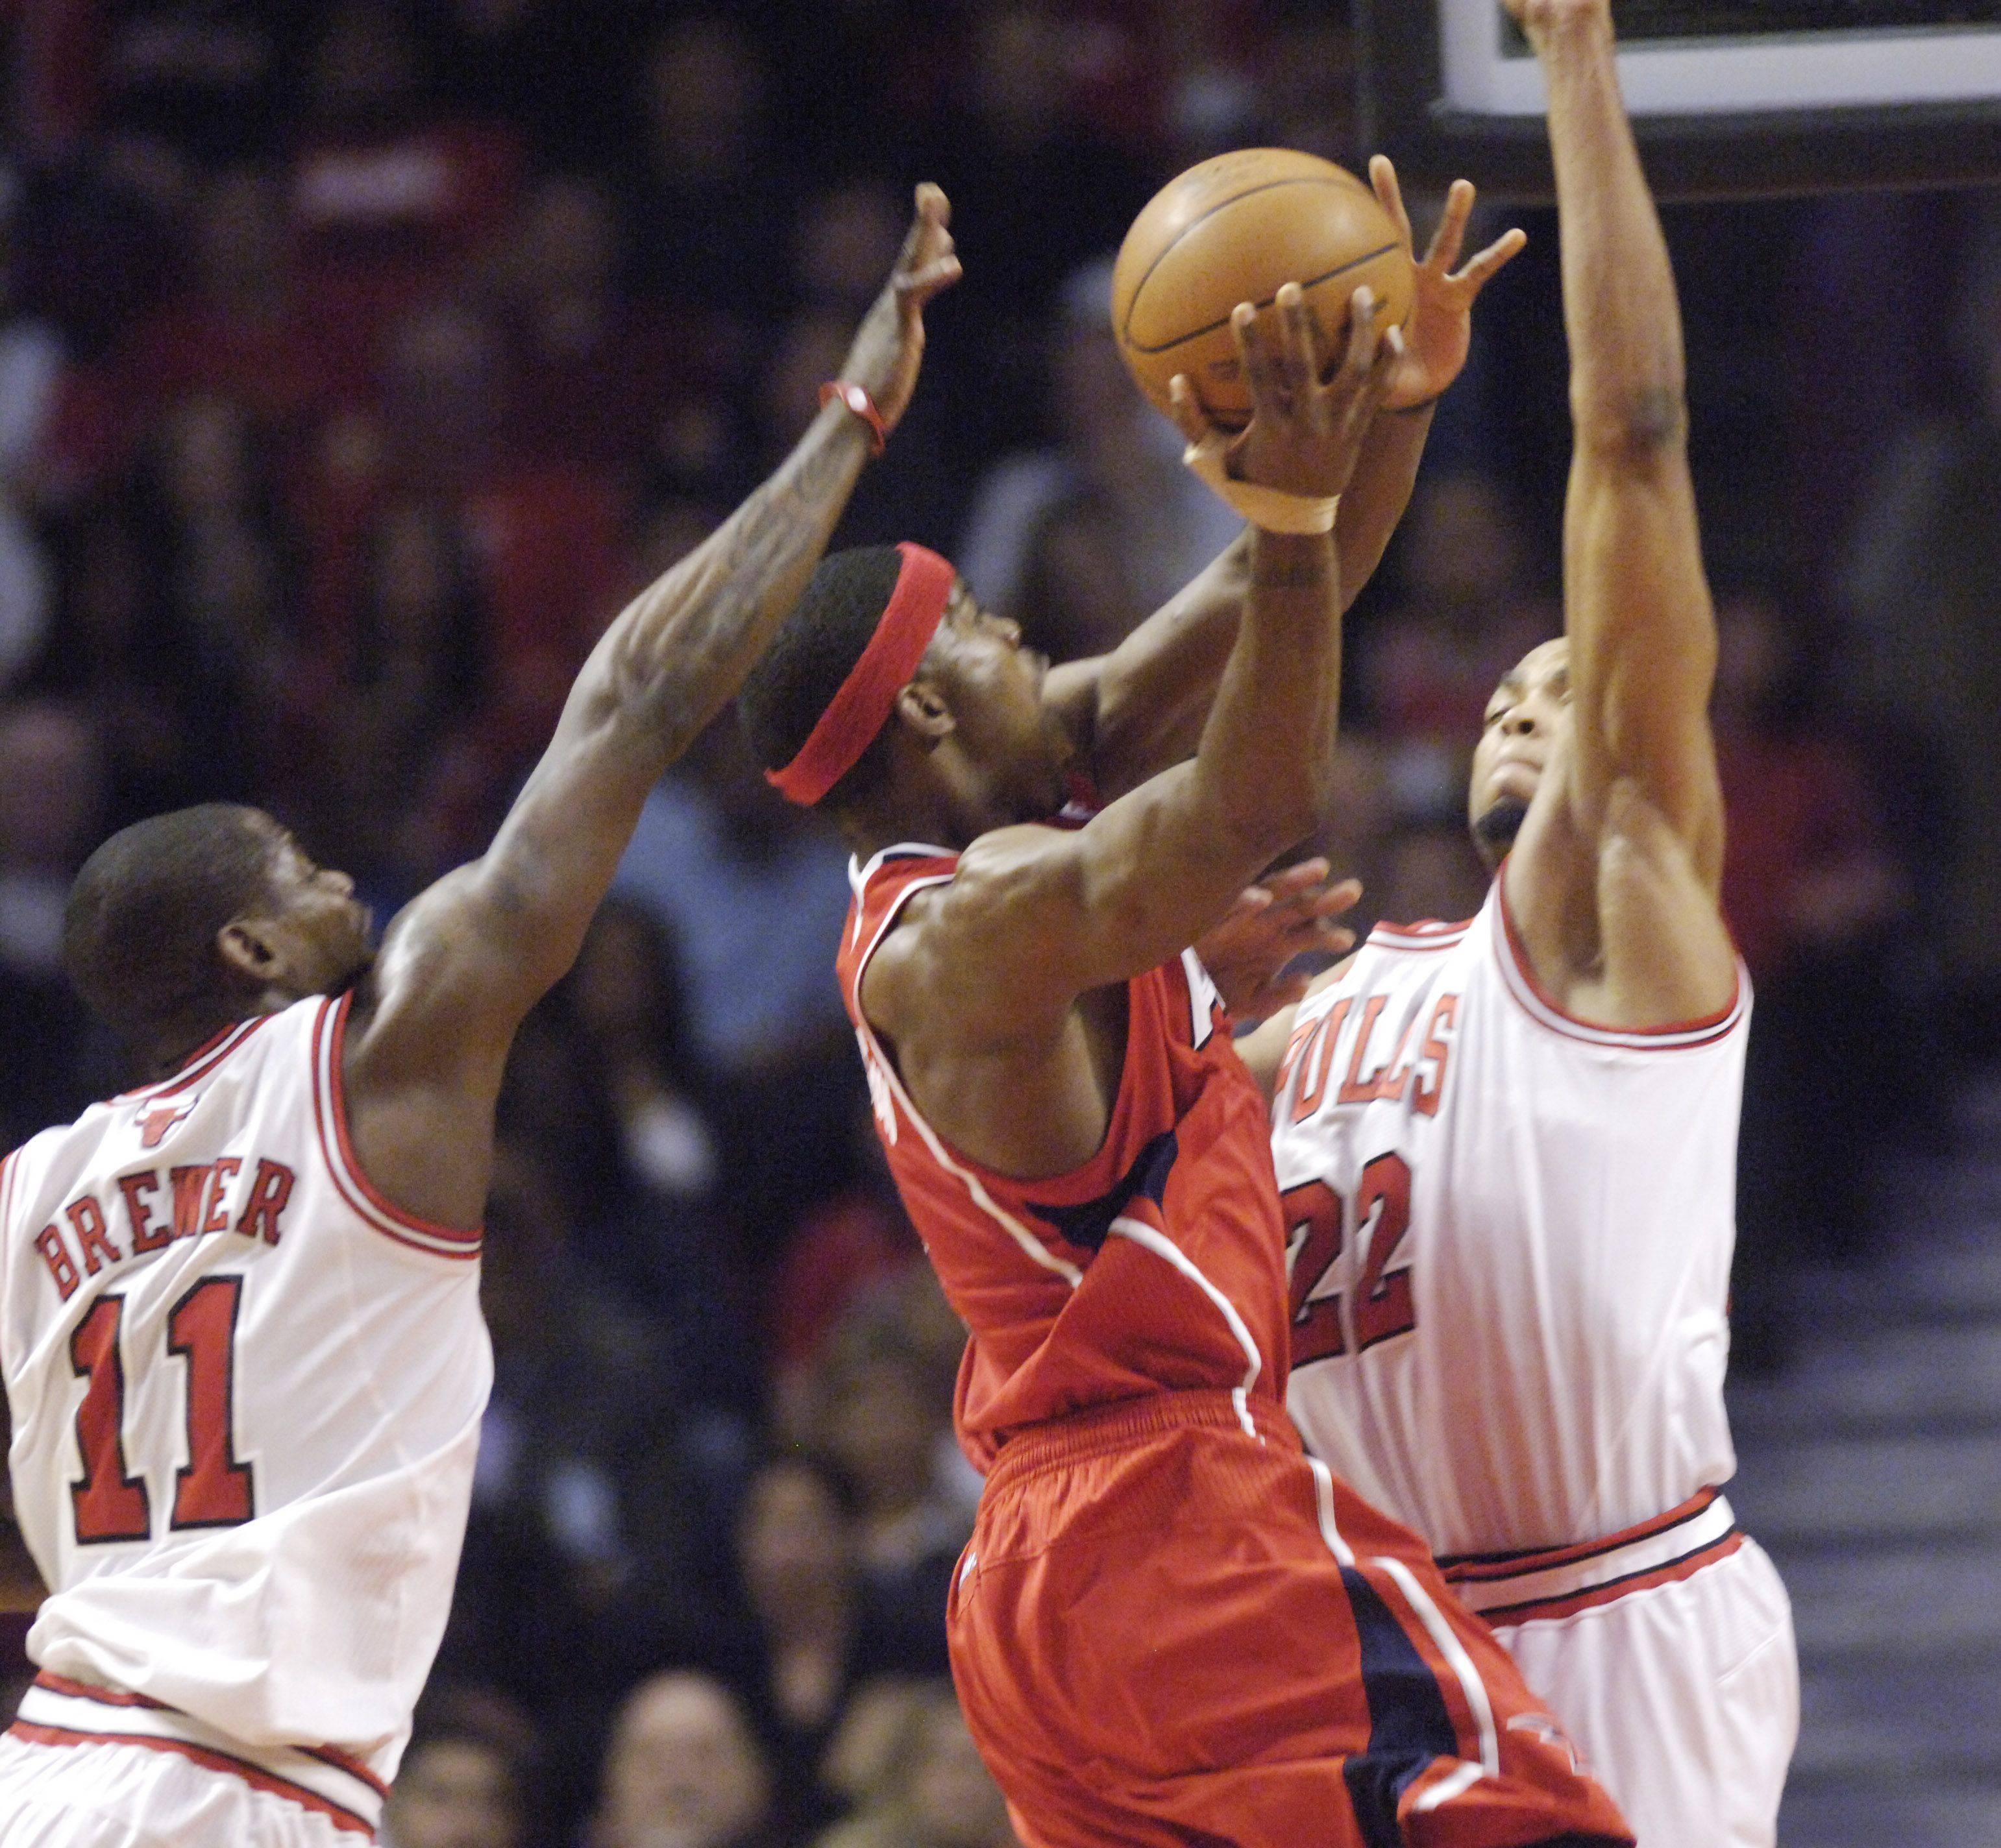 JOE LEWNARD/jlewnard@dailyherald.comJoe Johnson of the Atlanta Hawks goes to the basket against Ronnie Brewer, left, and Taj Gibson of the Bulls during Monday's game at the United Center.